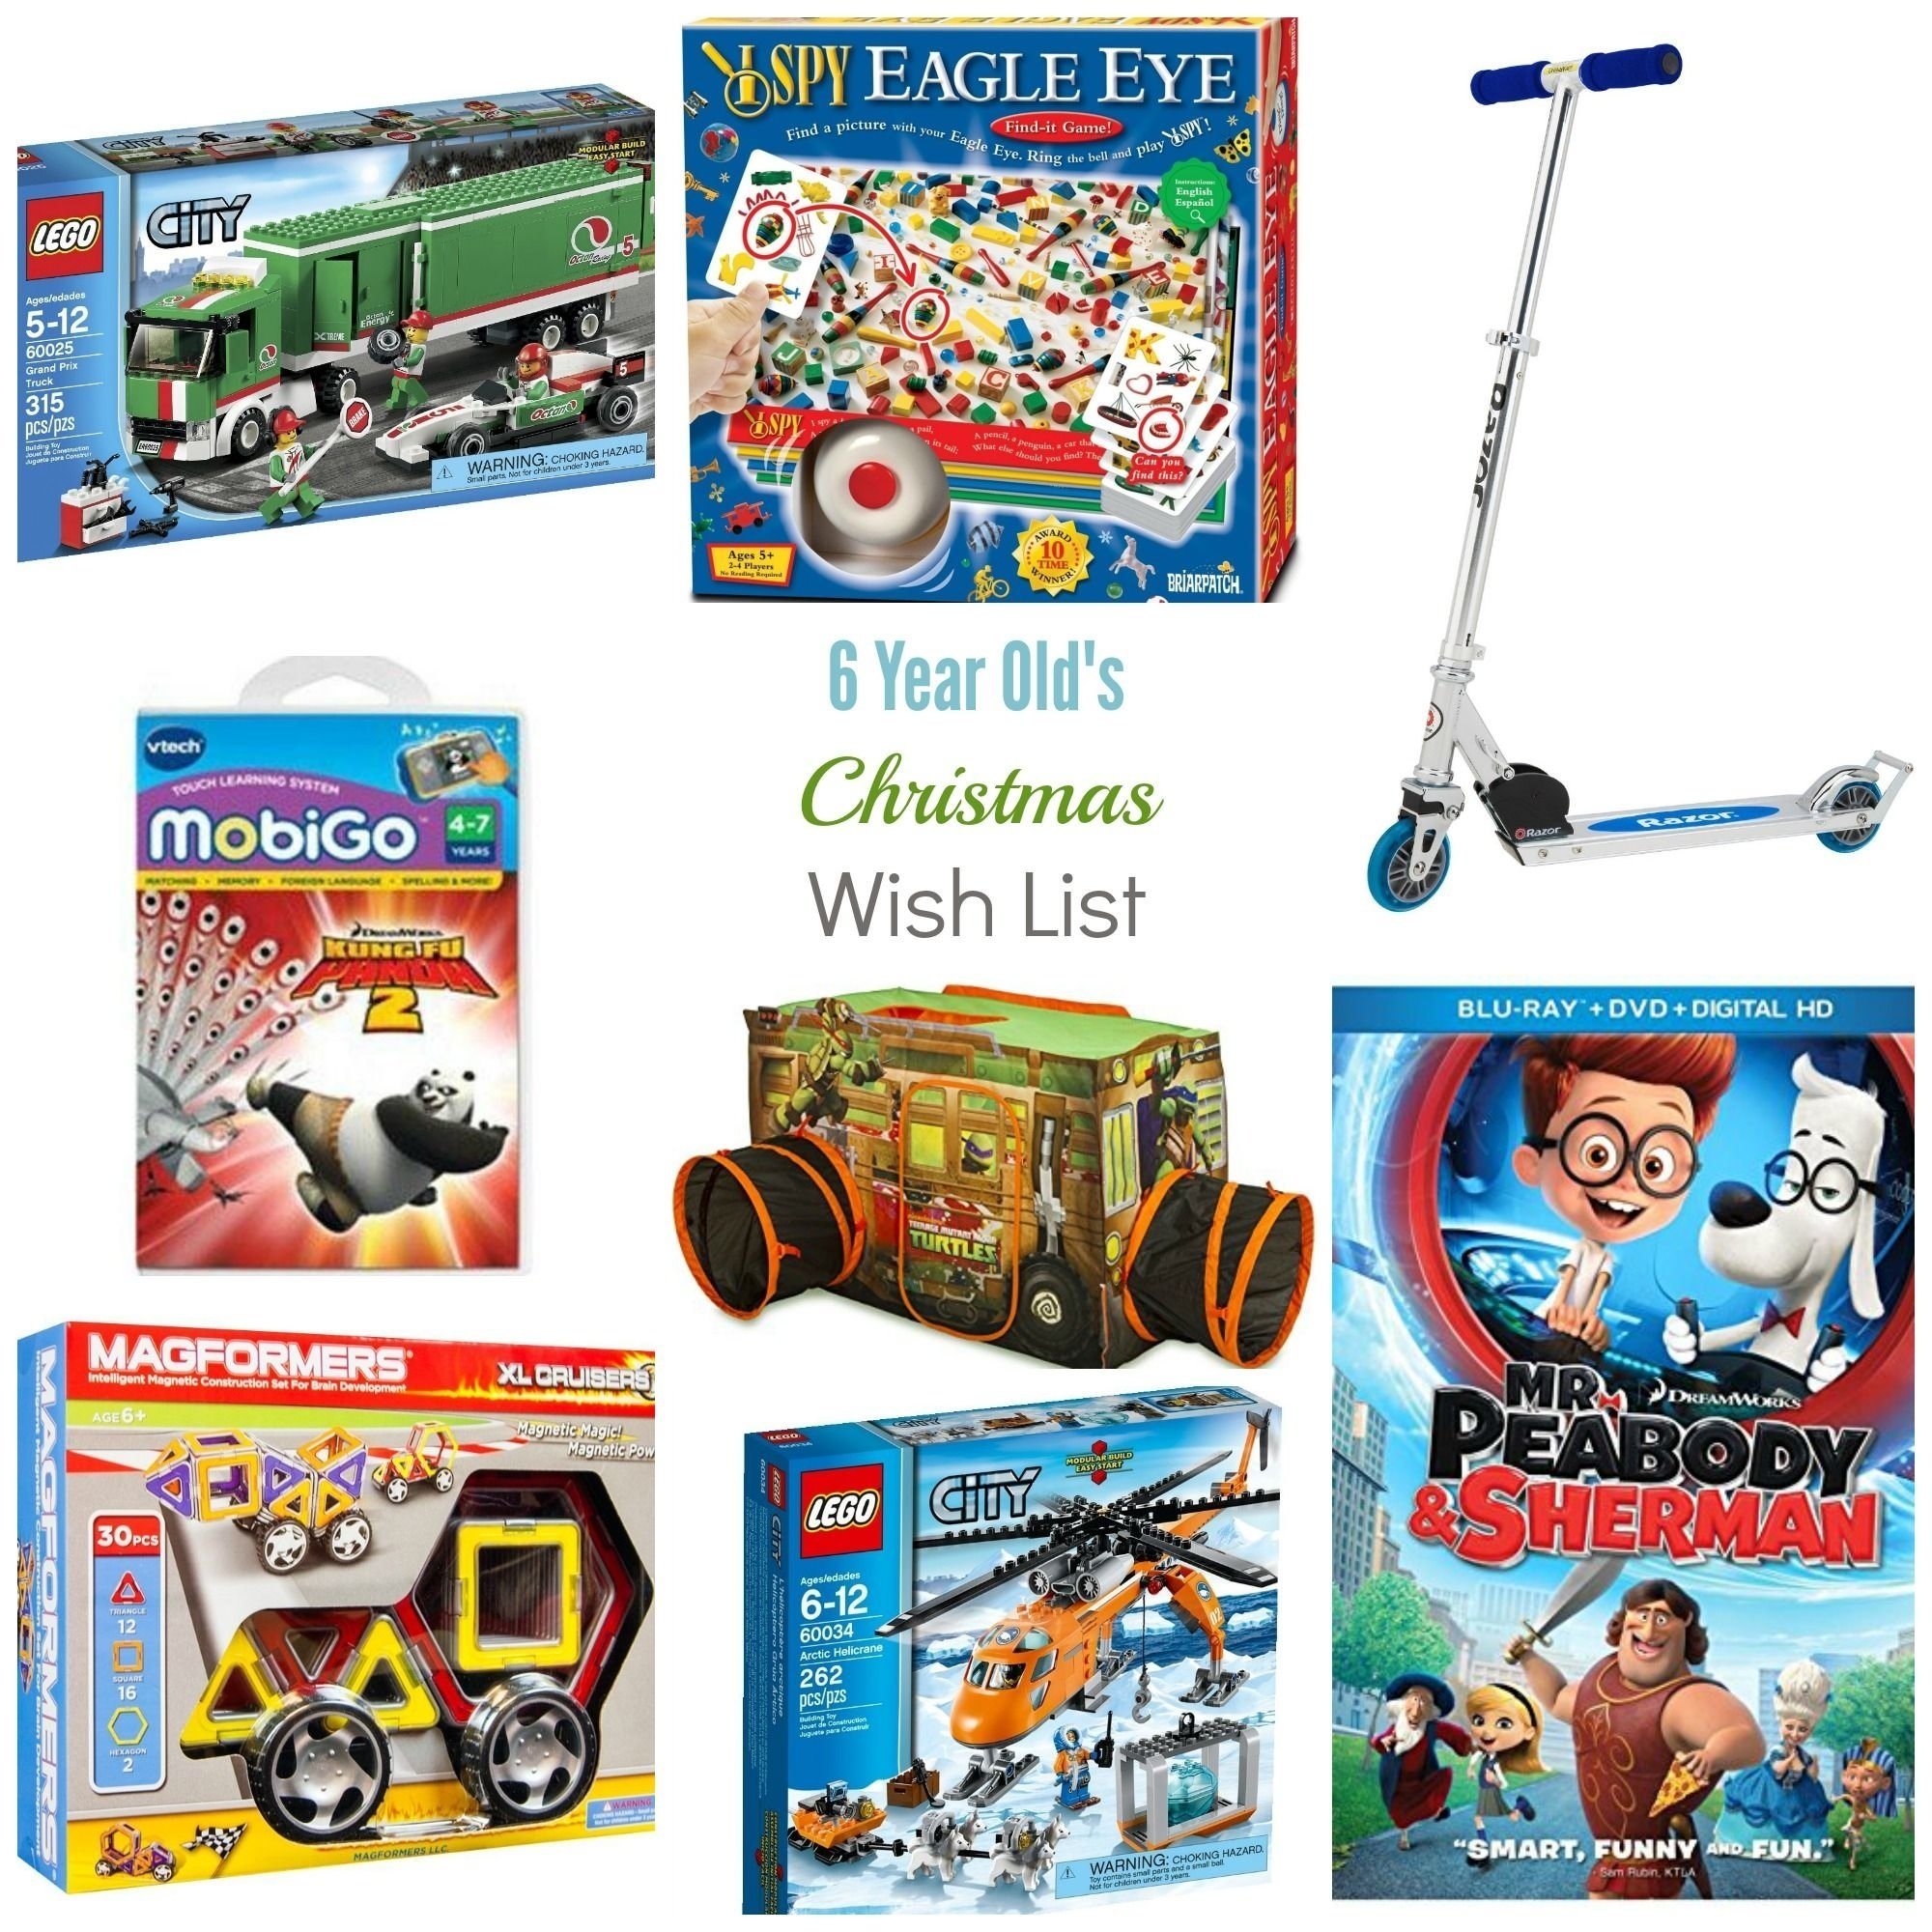 10 Unique Christmas Gift Ideas For 5 Year Old Boy christmas wish list 6 year old boy legos ninja turtles and gift 9 2020